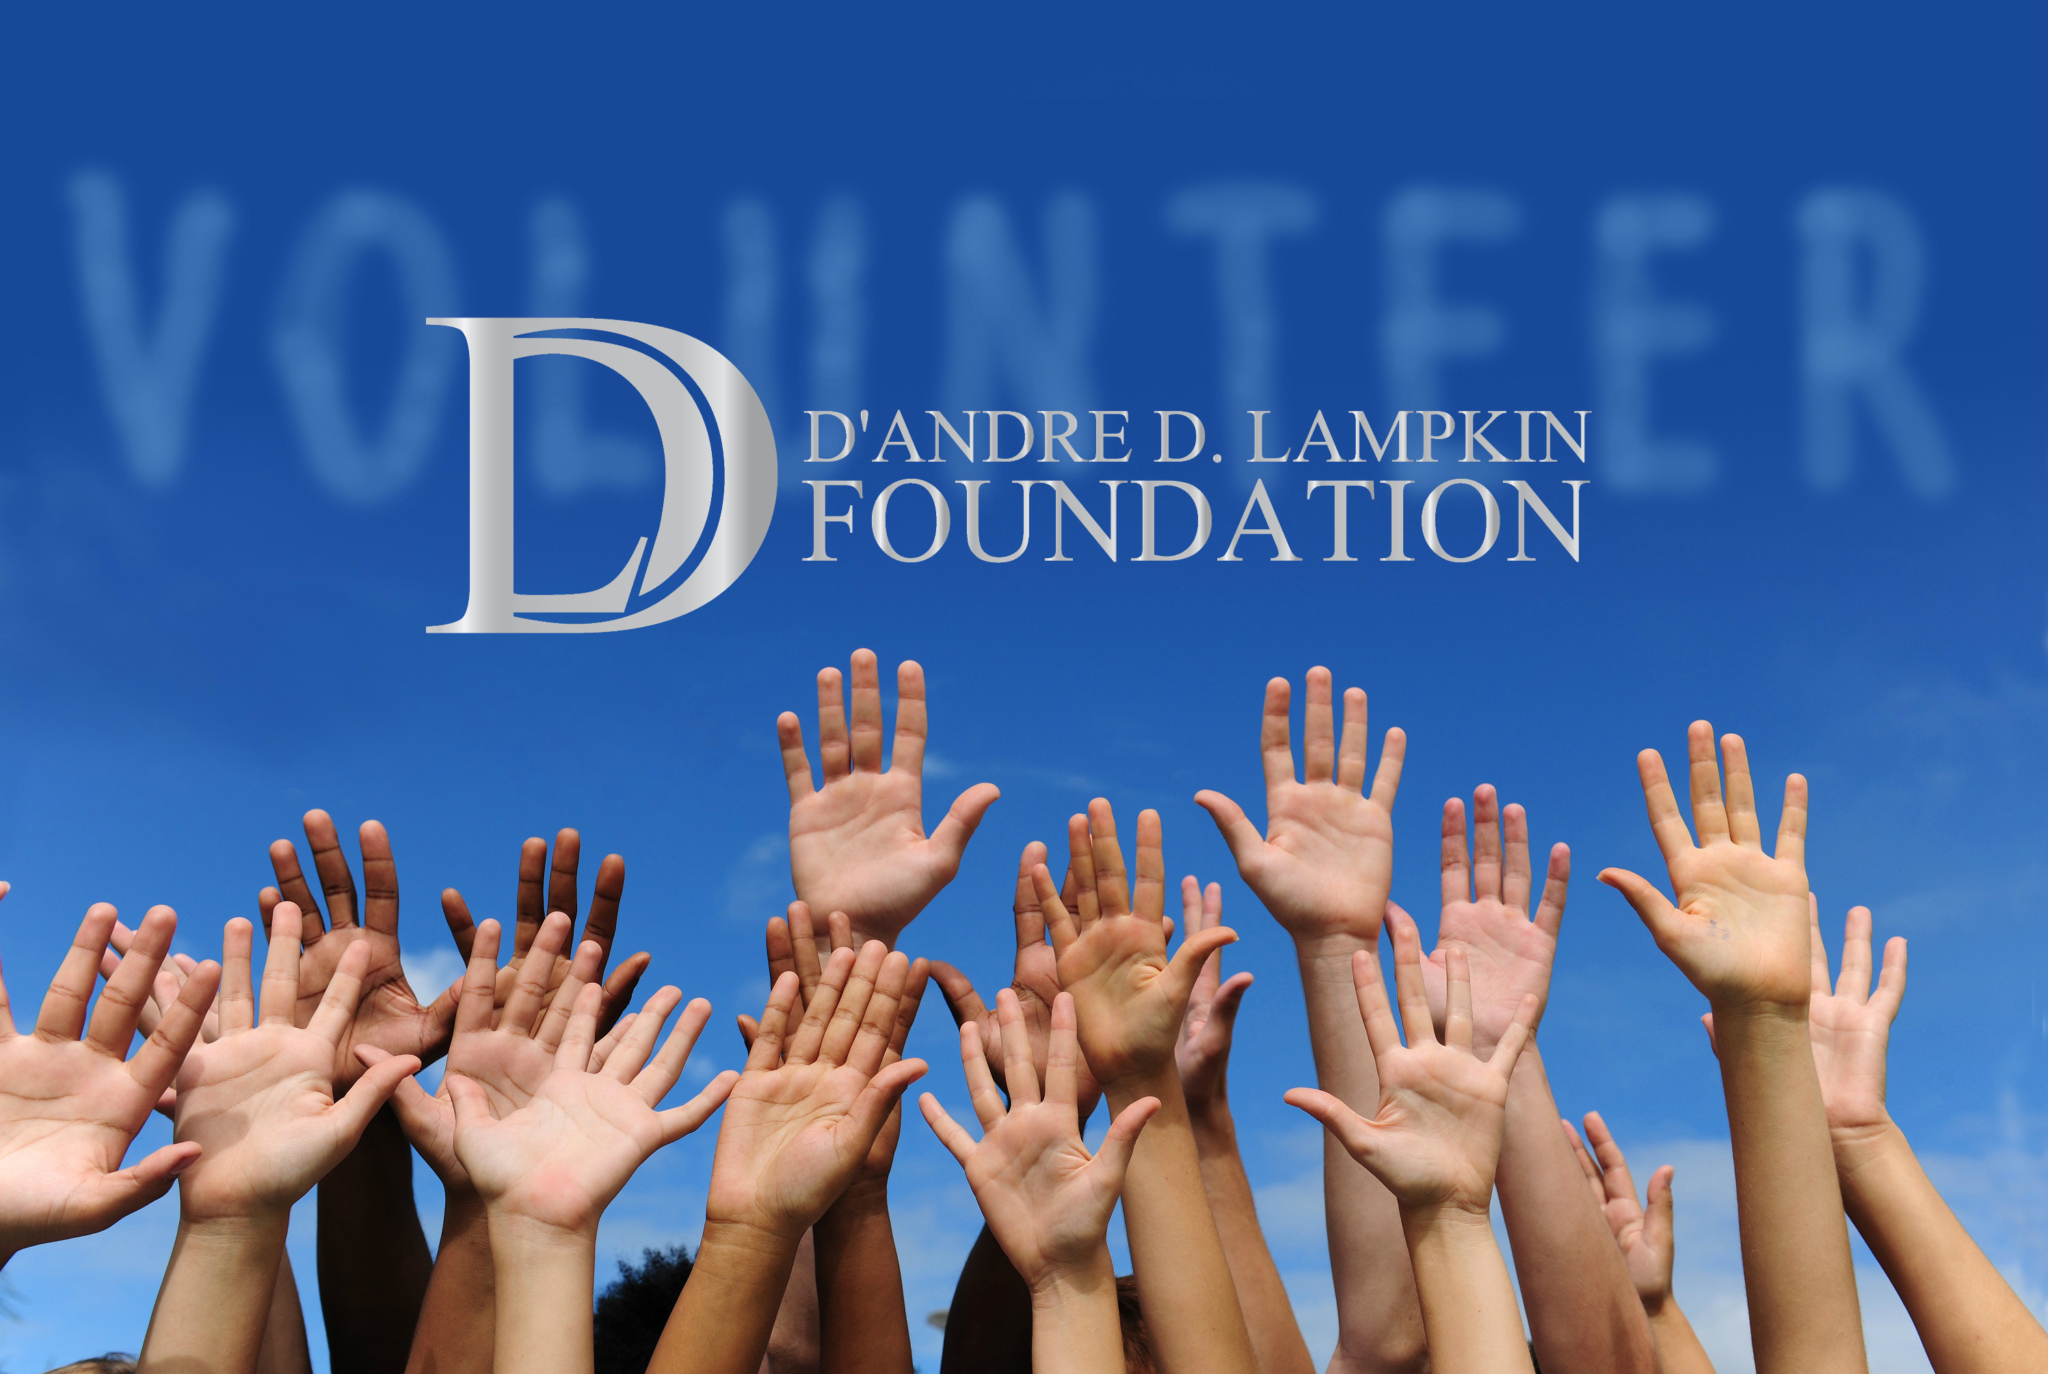 Volunteer D'Andre D. Lampkin Foundation